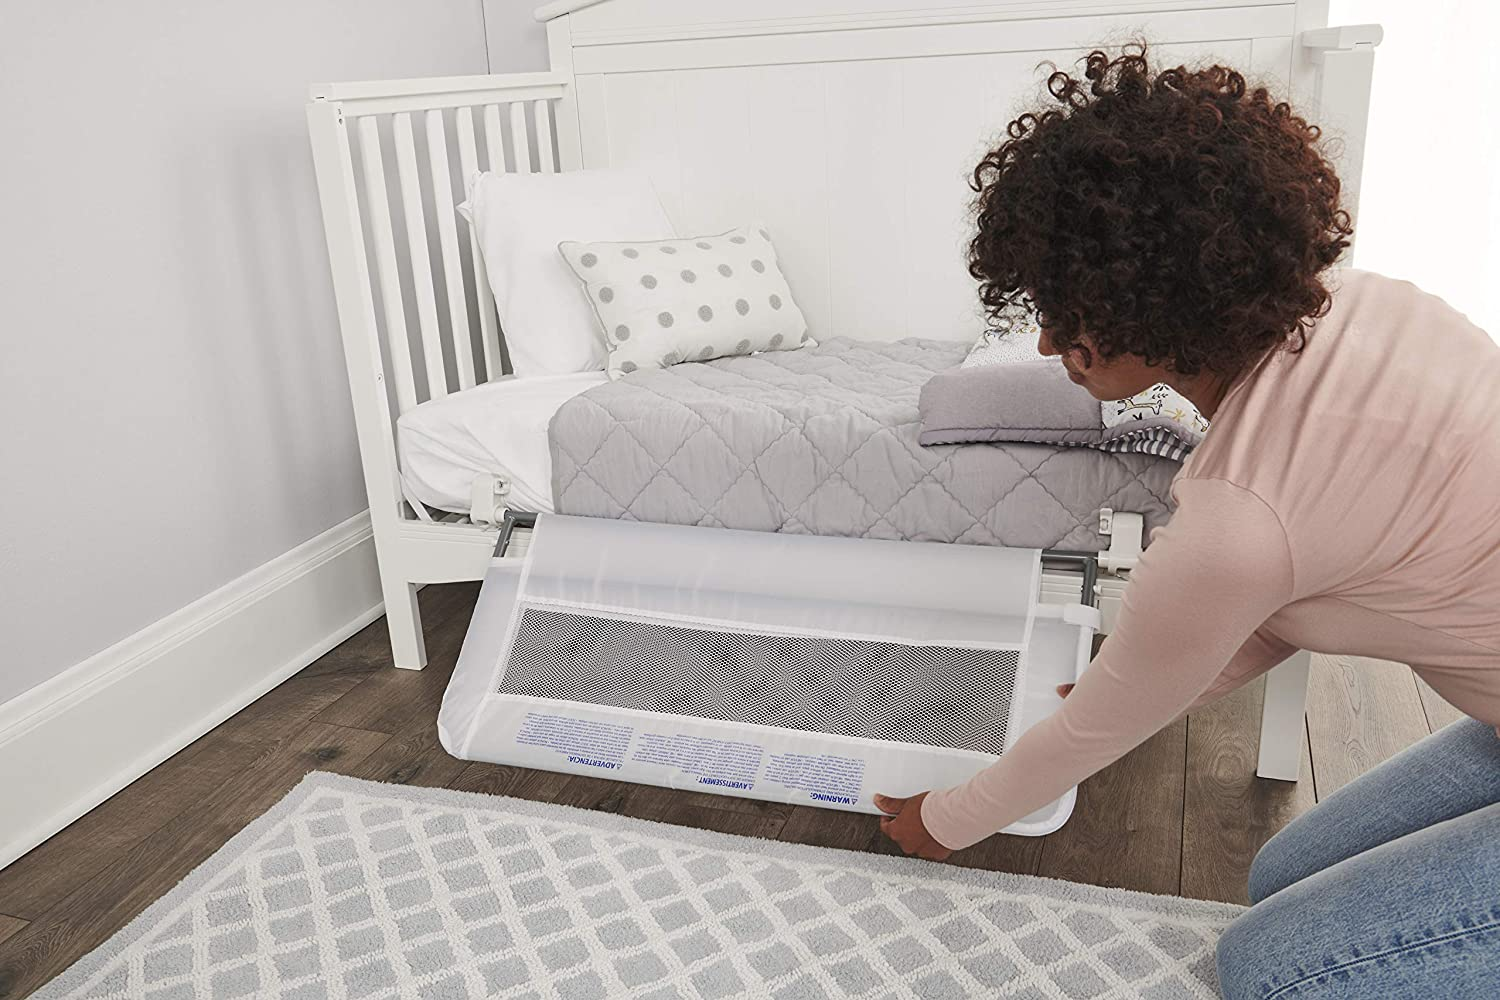 Regalo Swing Down Crib Rail, with Reinforced Anchor Safety System